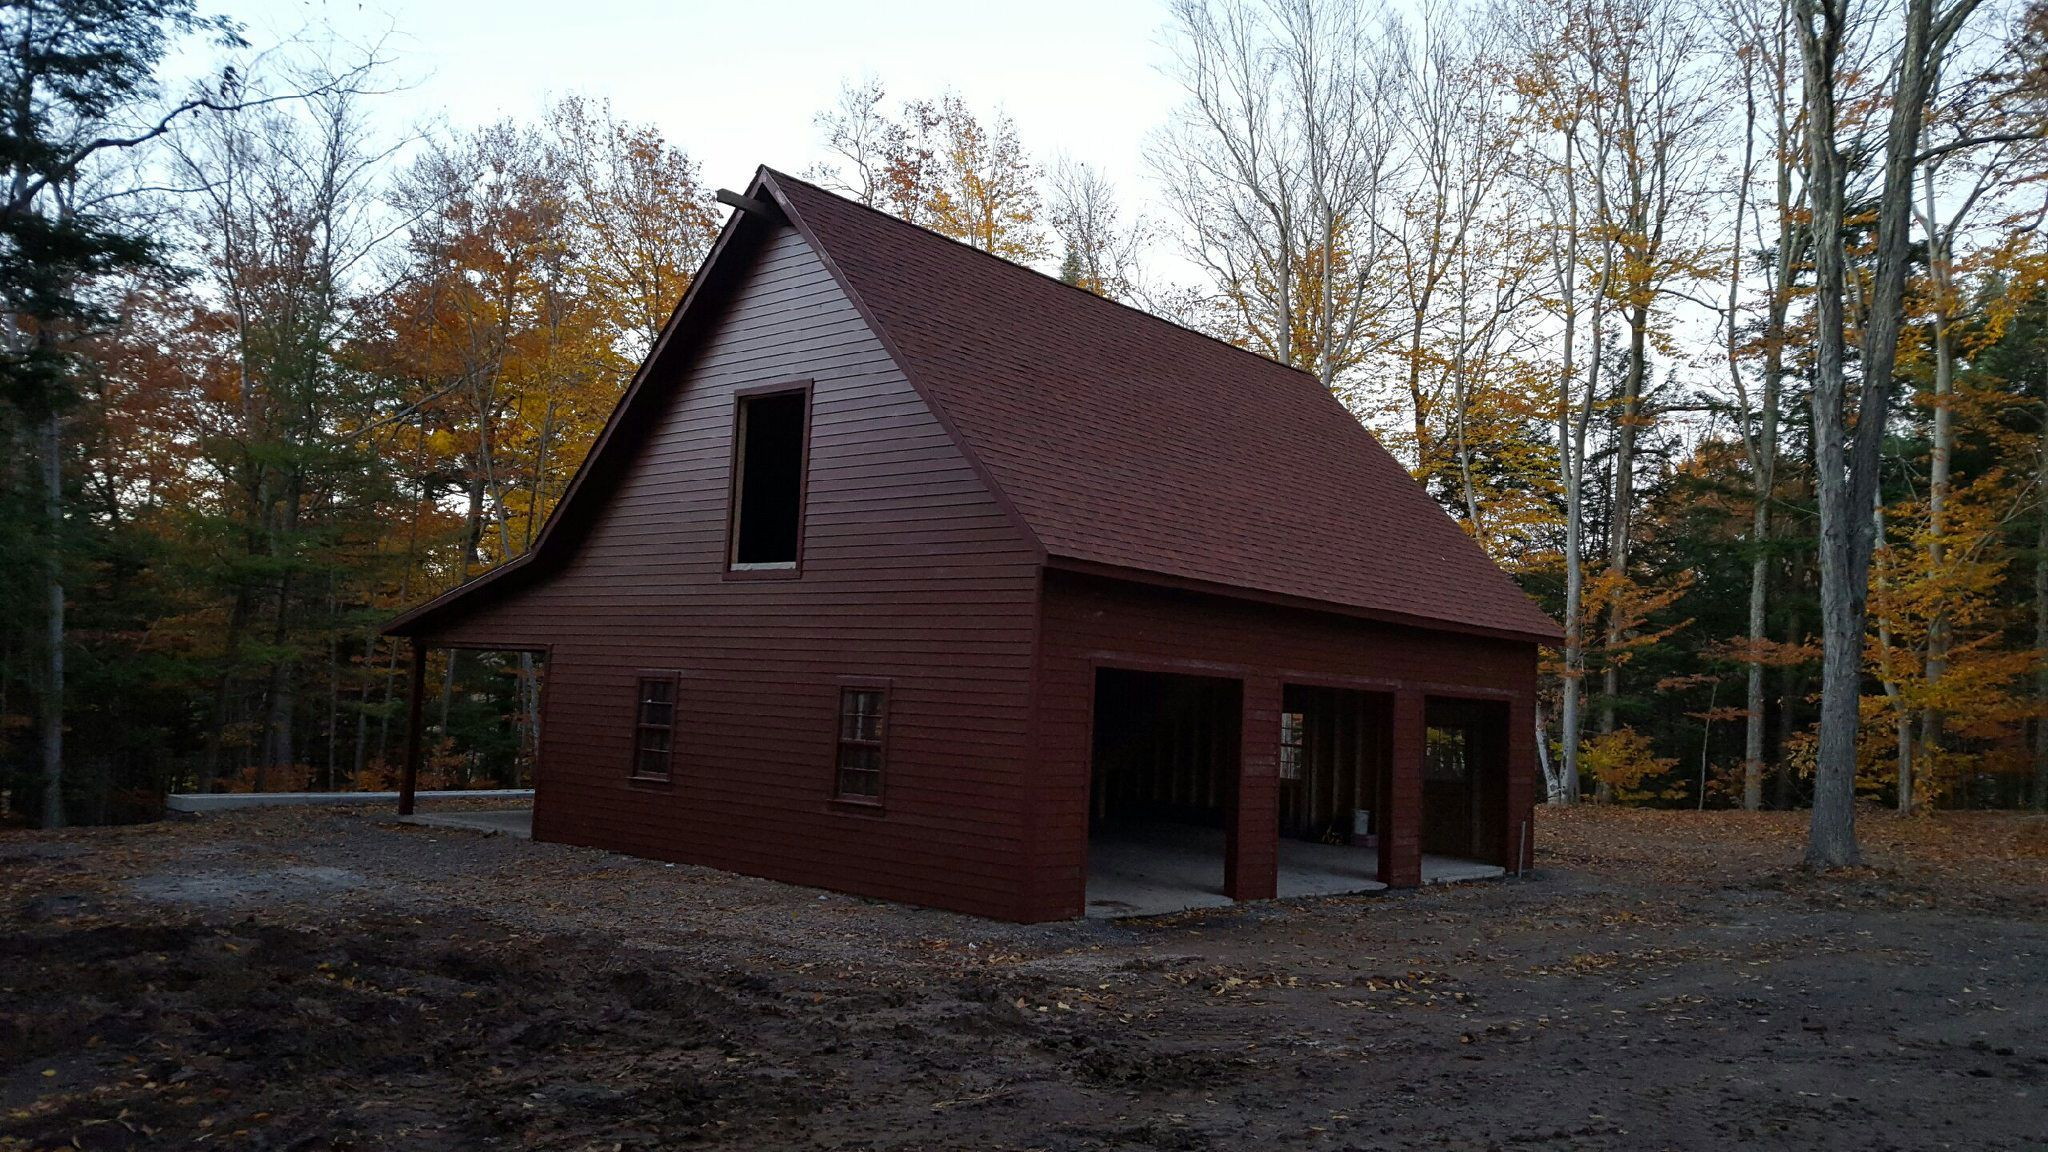 residential ny pa and dc built attached va in amish img nj garage de contractors garages ct md